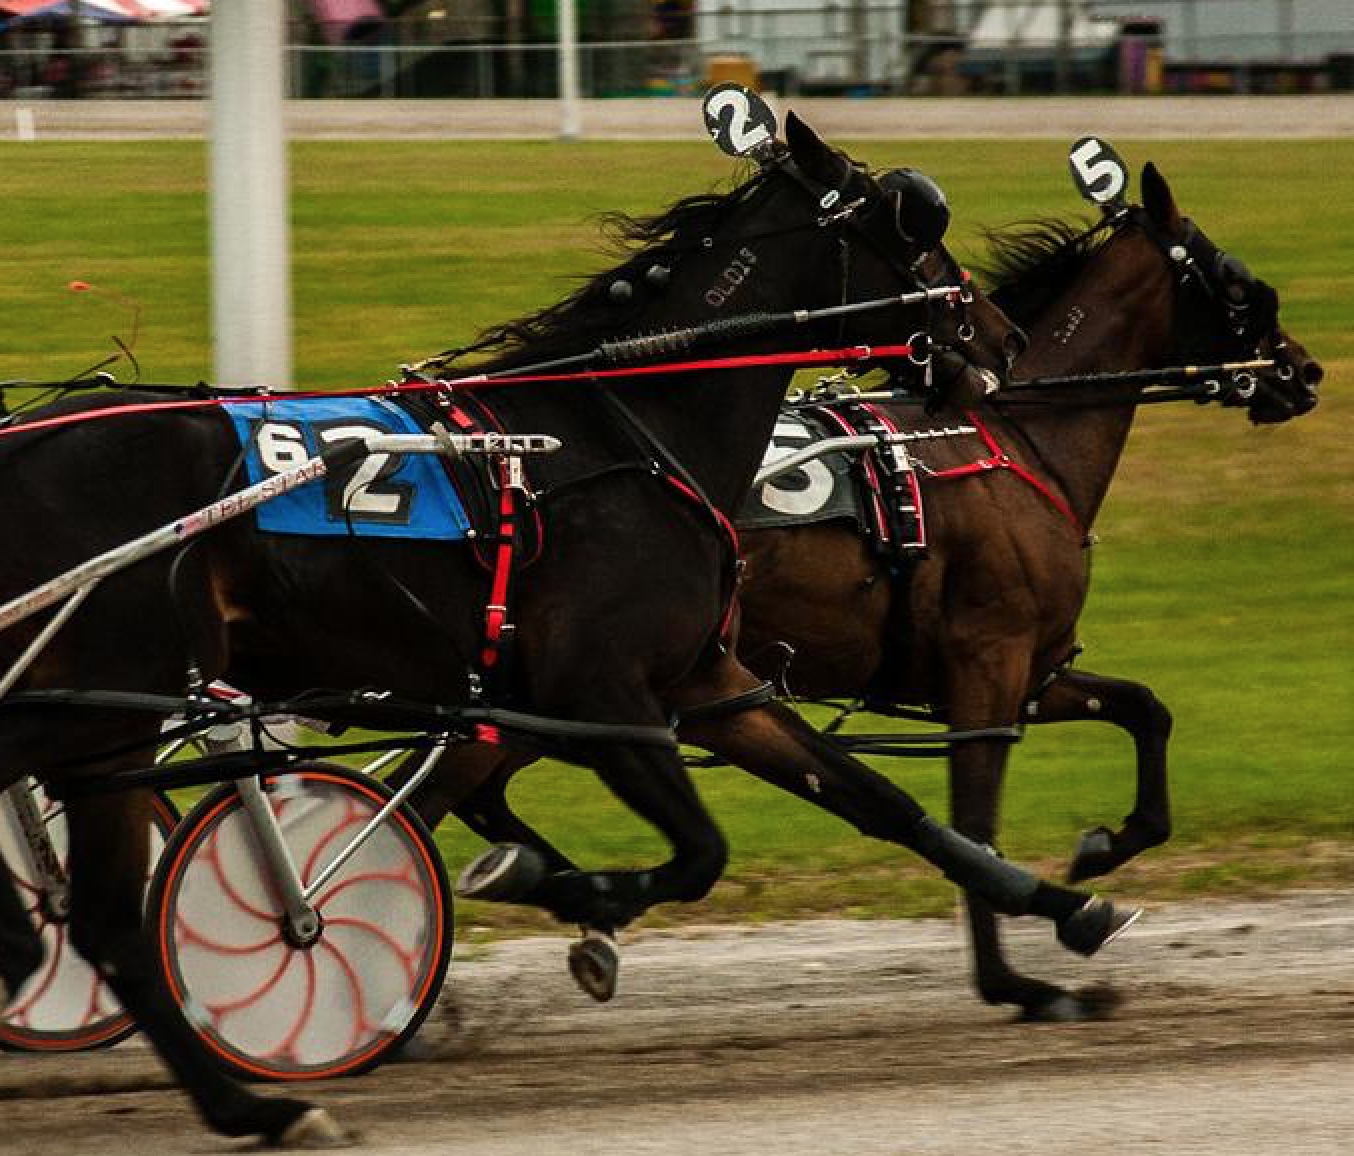 Standardbred horses pull a cart as they race around the track.